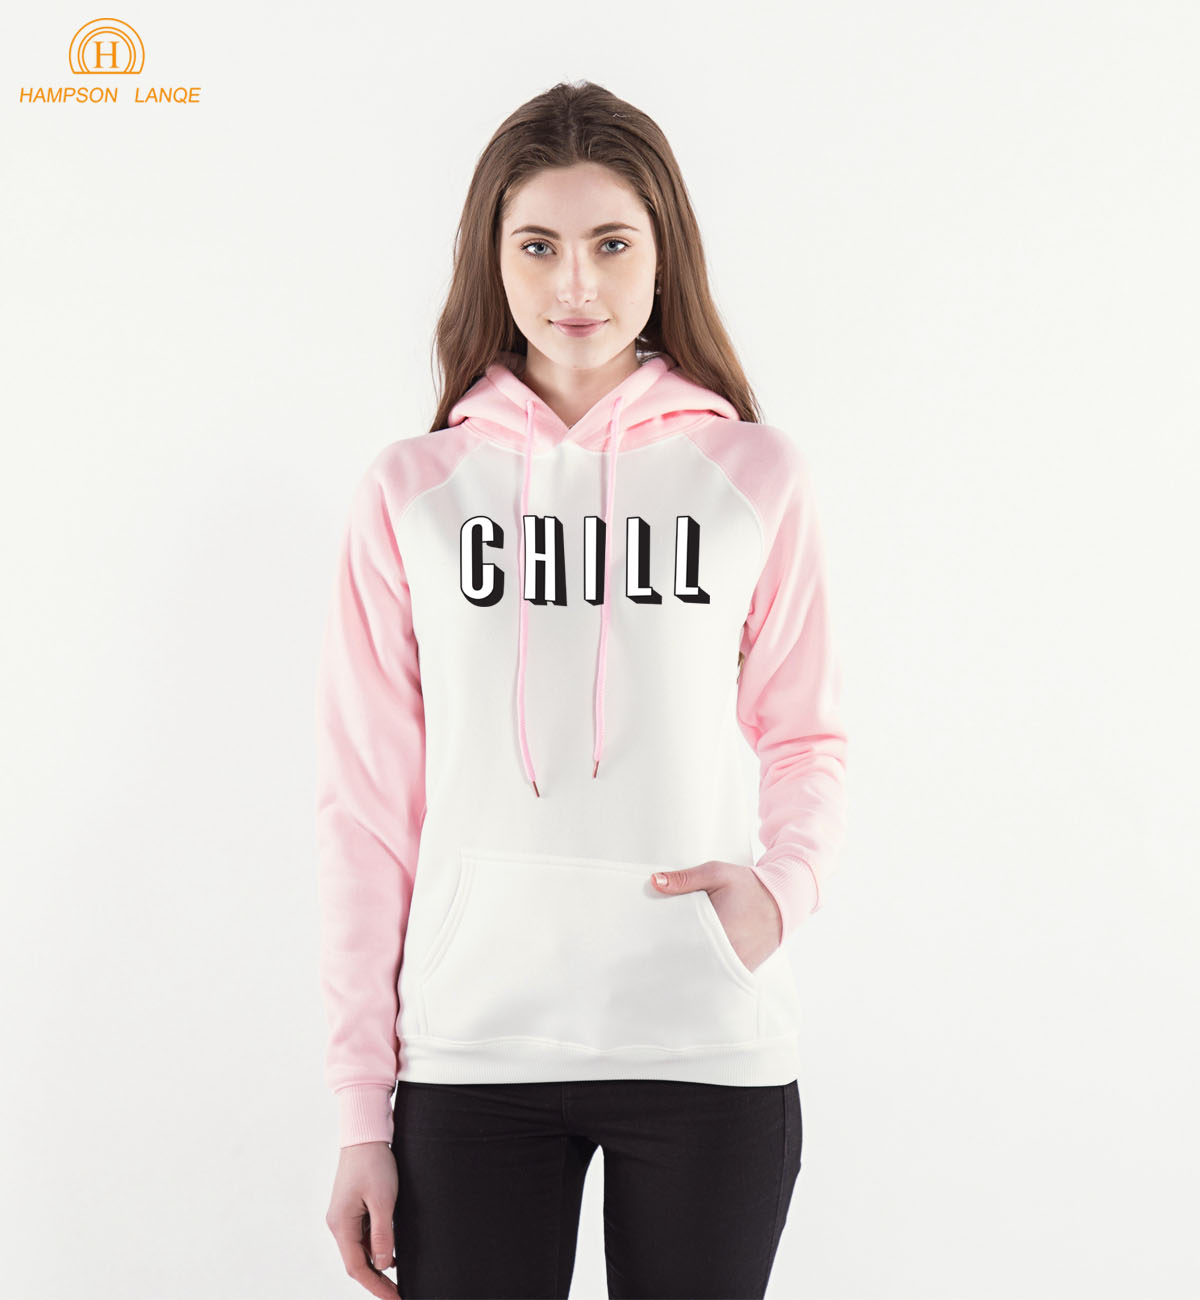 Fashion Brand Chill Raglan Hoodies Sweatshirts Women 2019 Spring Autumn Kawaii Women's Hooded Warm Fleece Long Sleeve Hooded